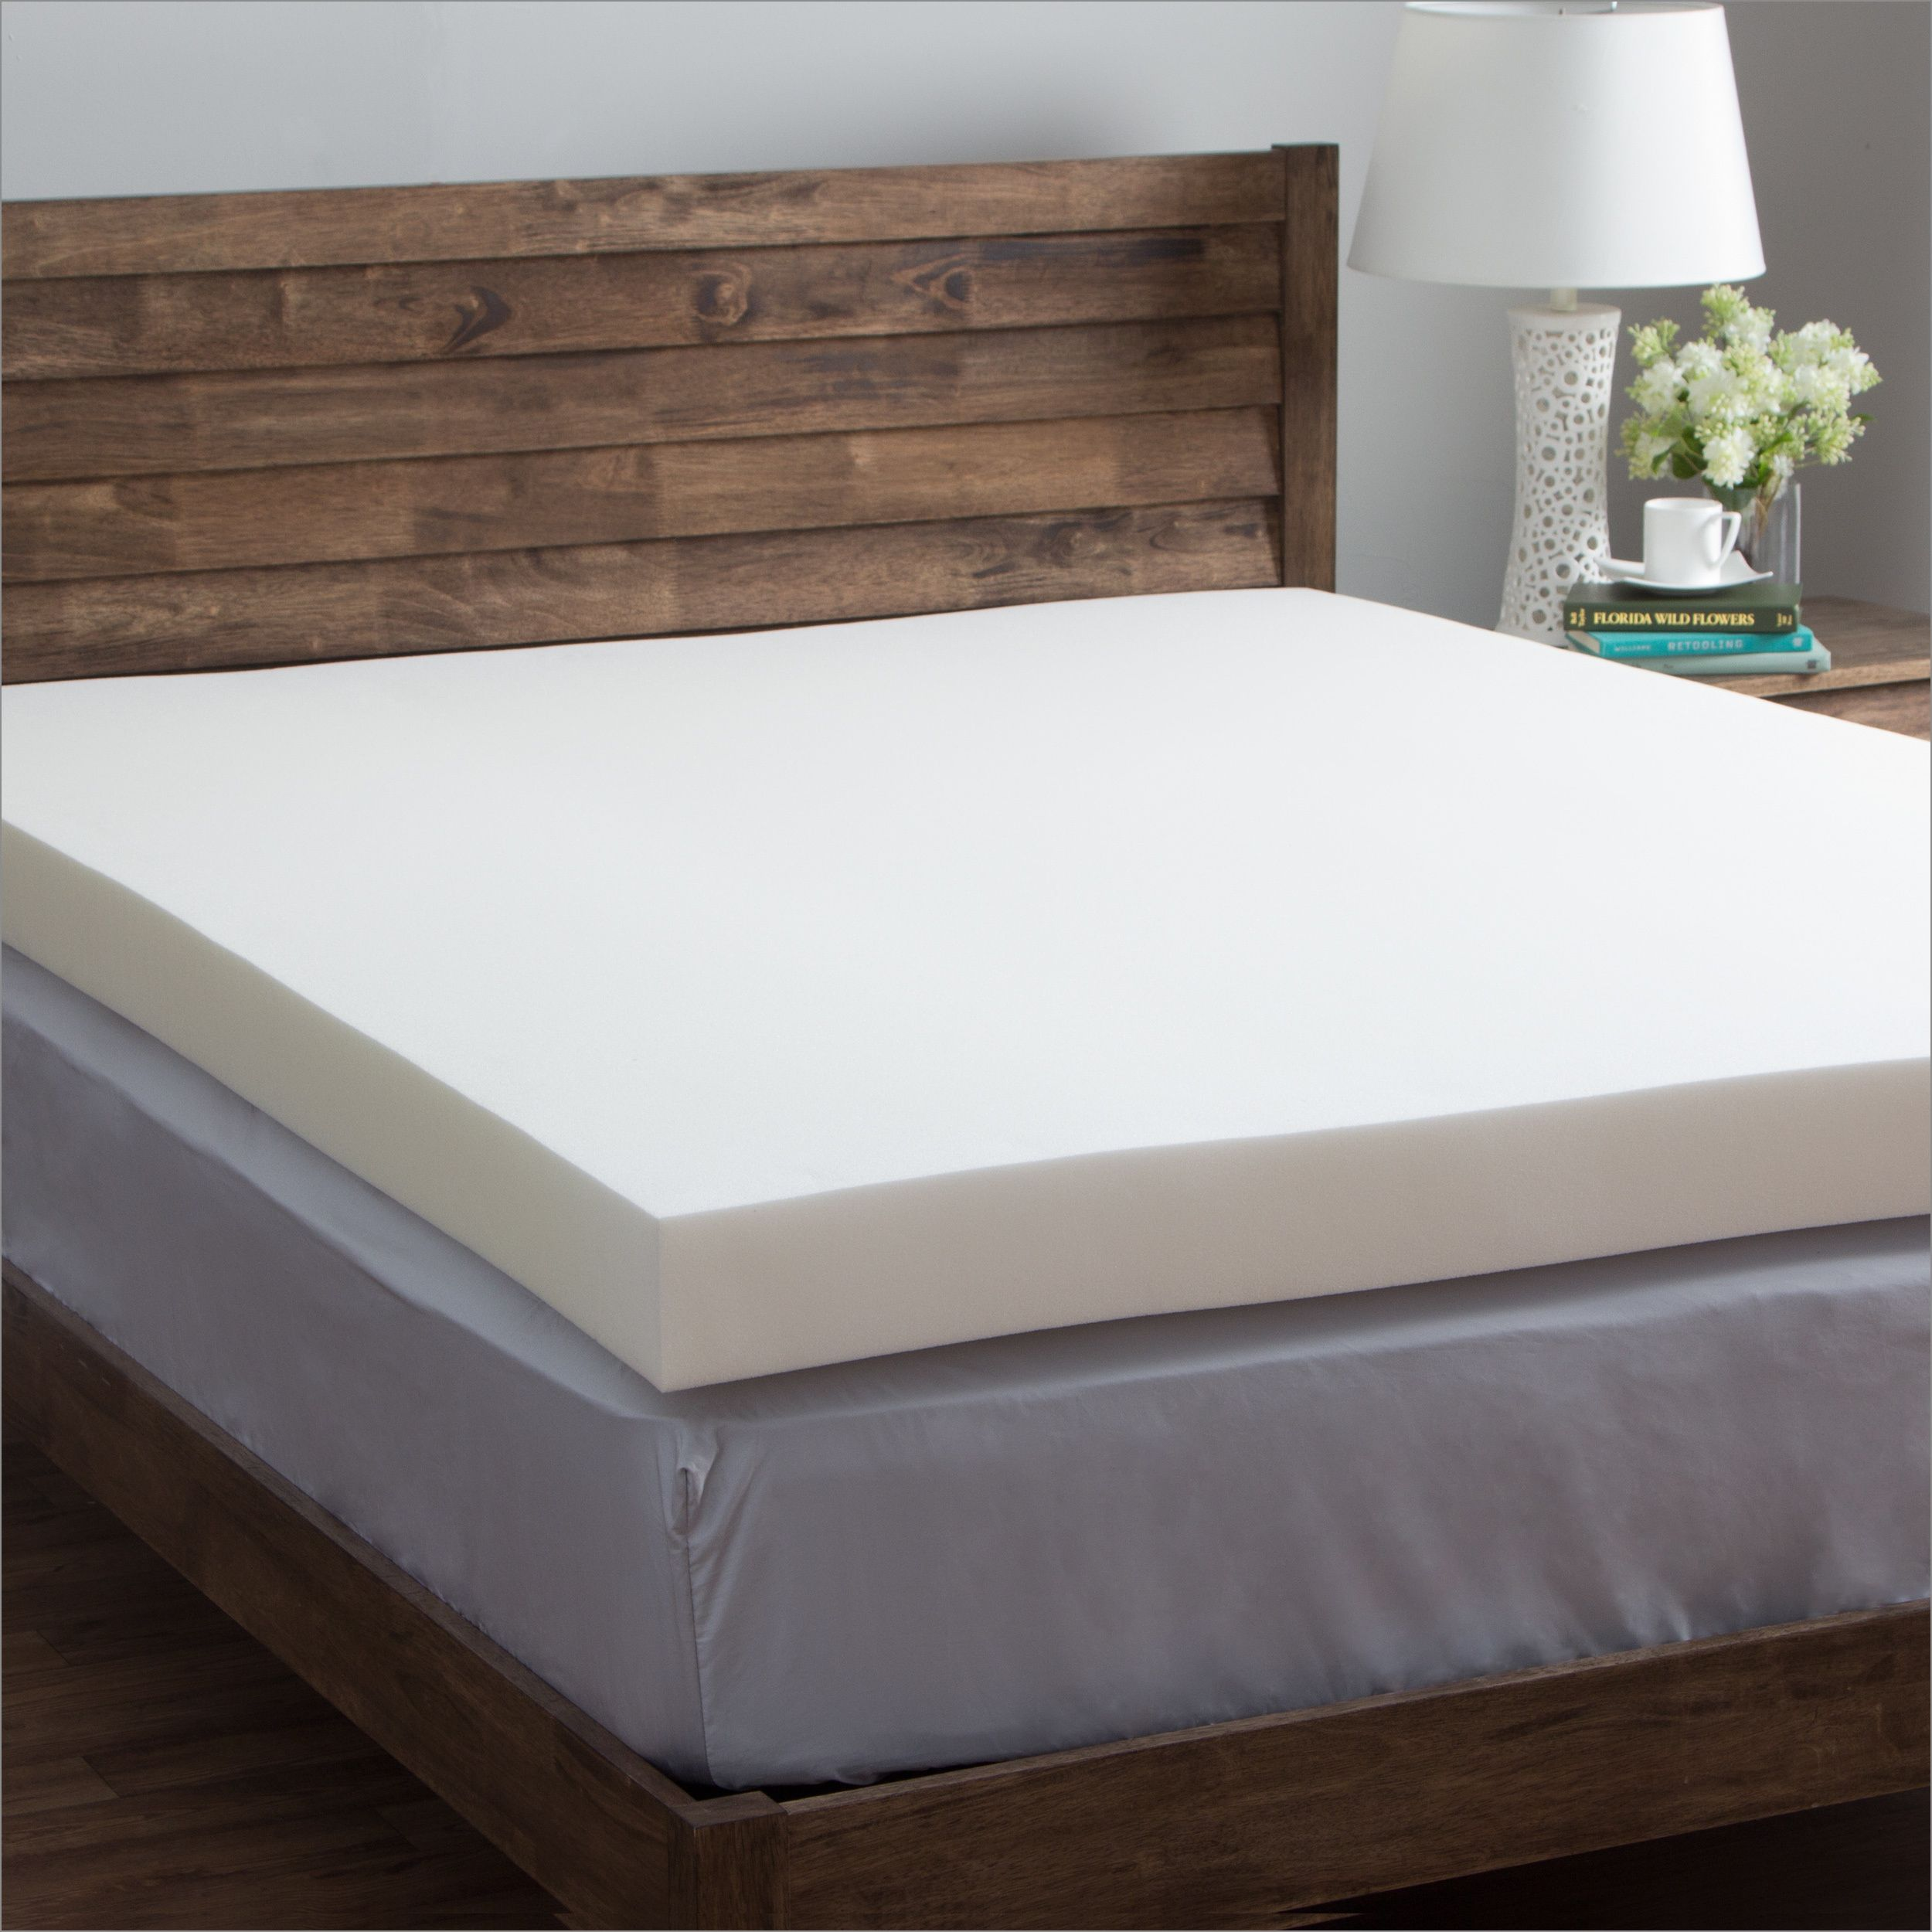 Memory Foam Mattress Topper Thickness Check More At Https Www Cdomakis Photography Com With Images Foam Mattress Topper Memory Foam Mattress Memory Foam Mattress Topper